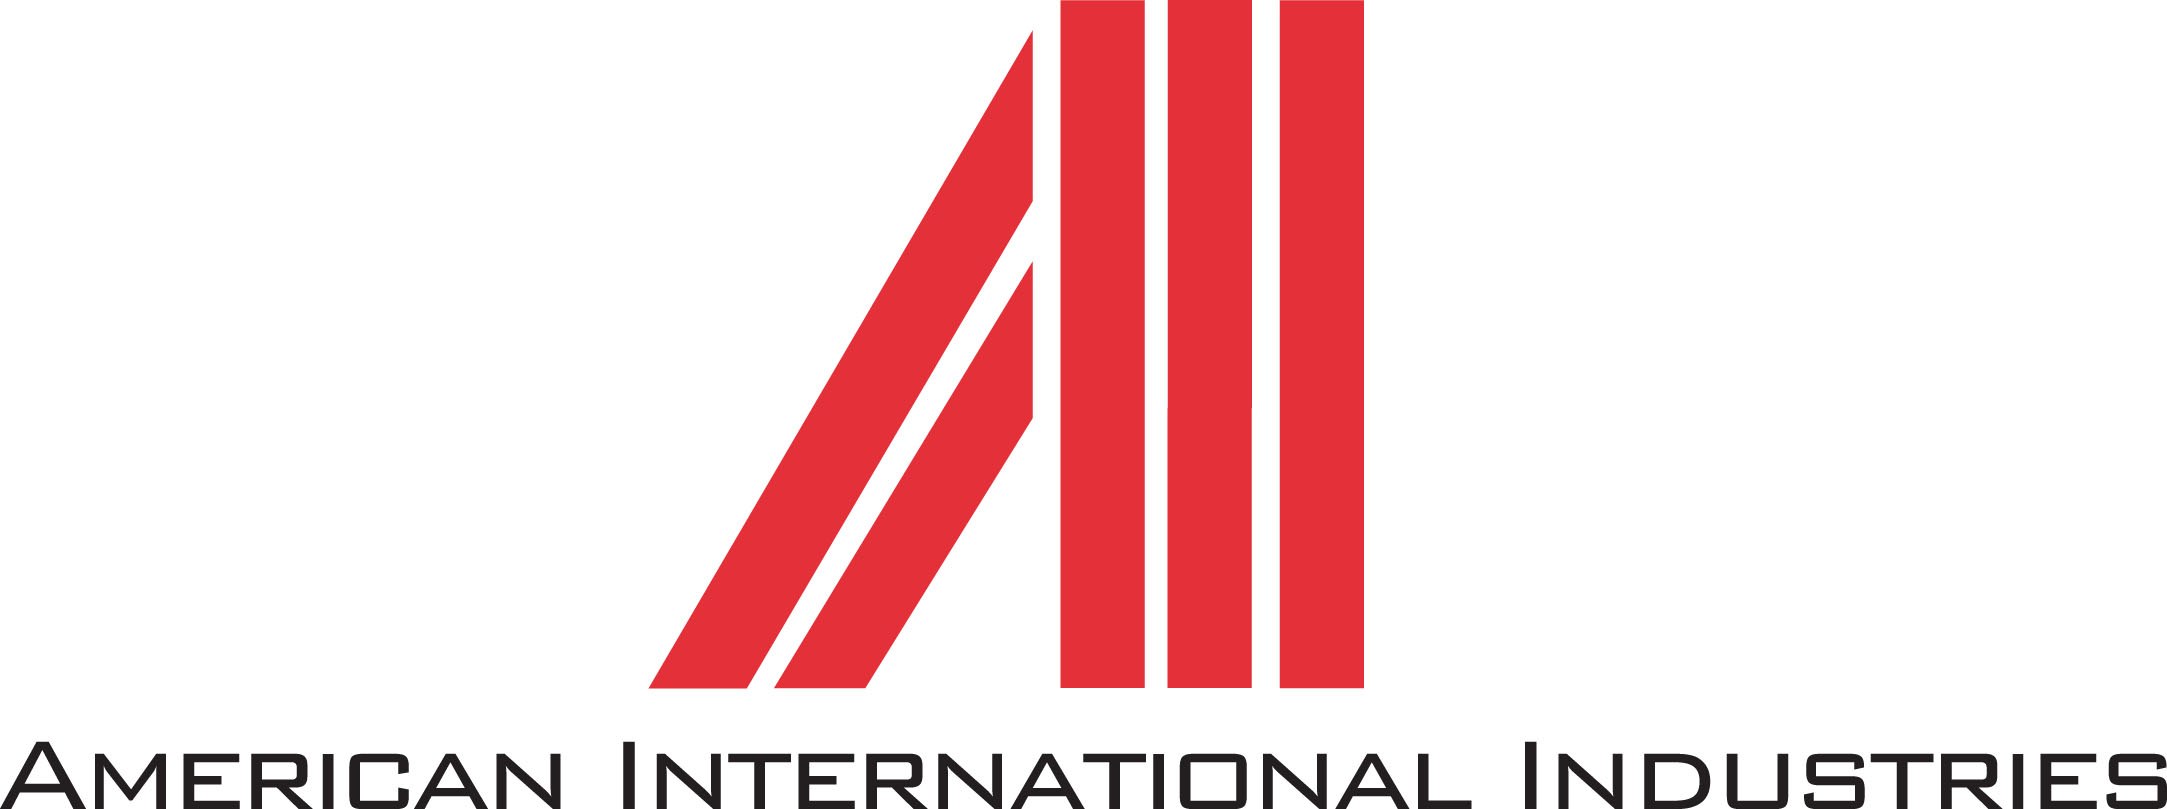 American International Industries (AII)